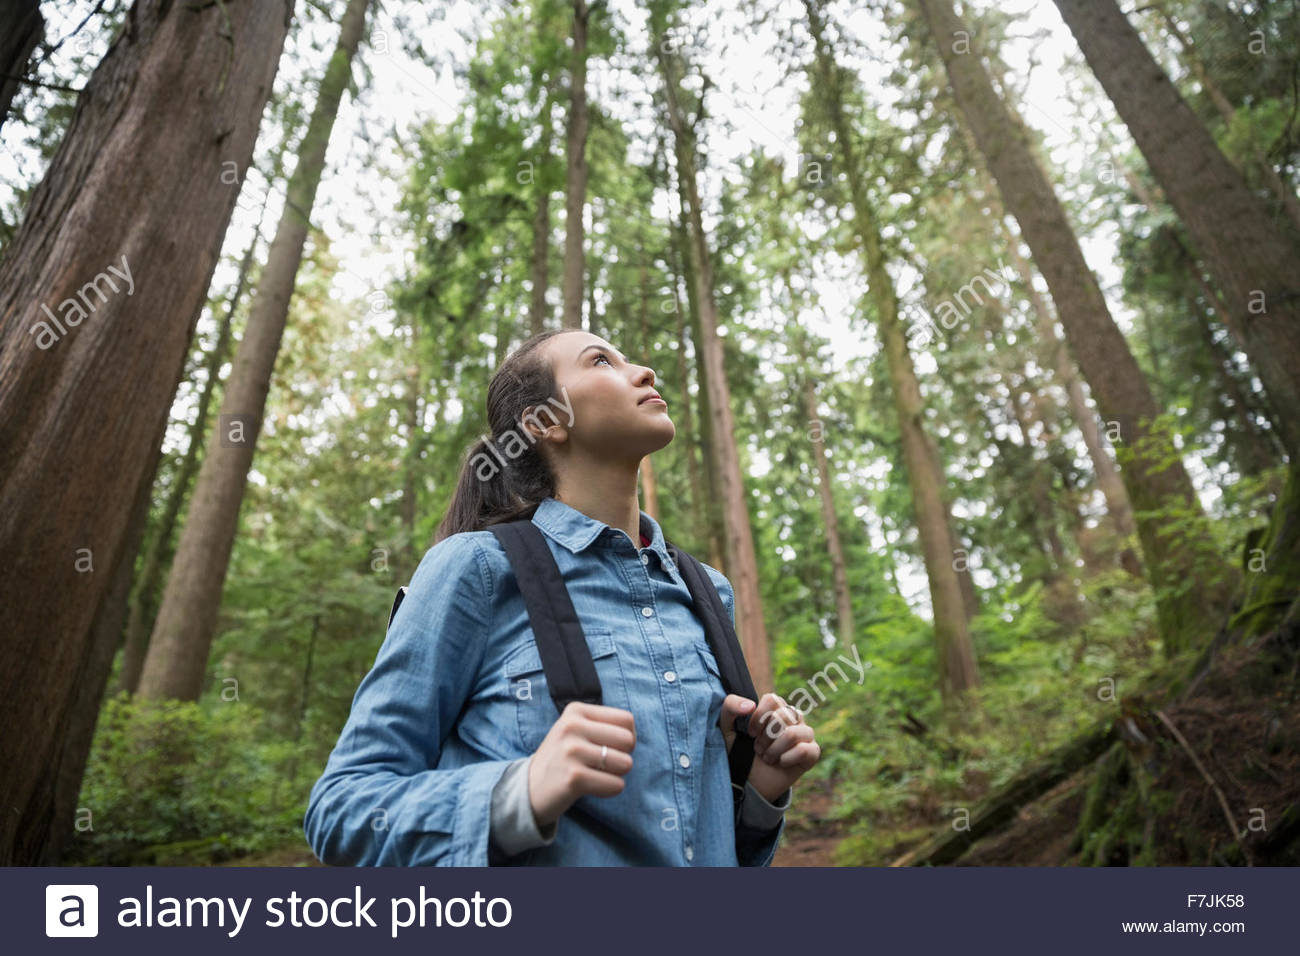 Pensive young woman hiking looking up trees woods Stock Photo